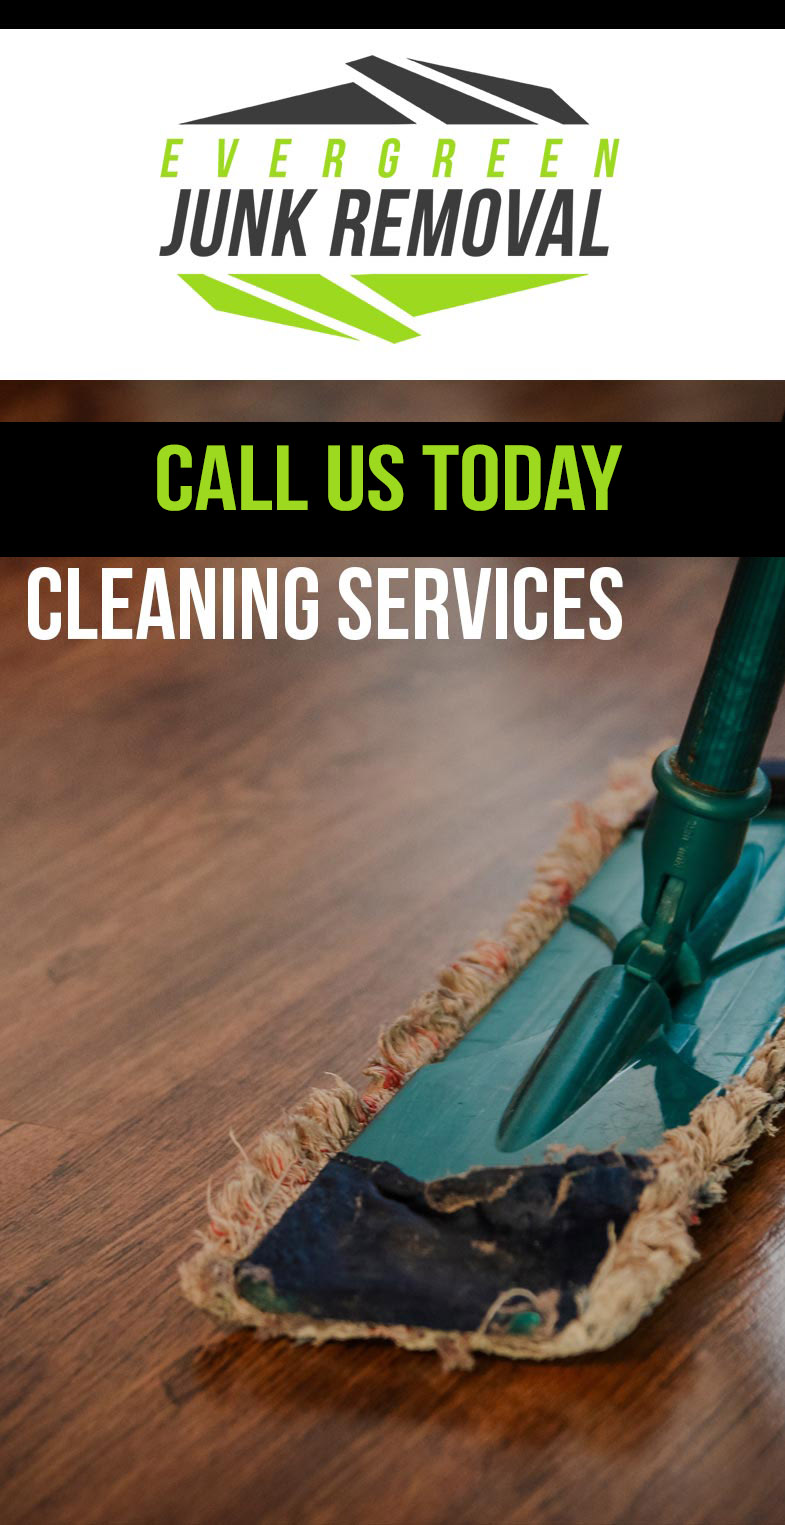 Delray Beach Florida Maid Services